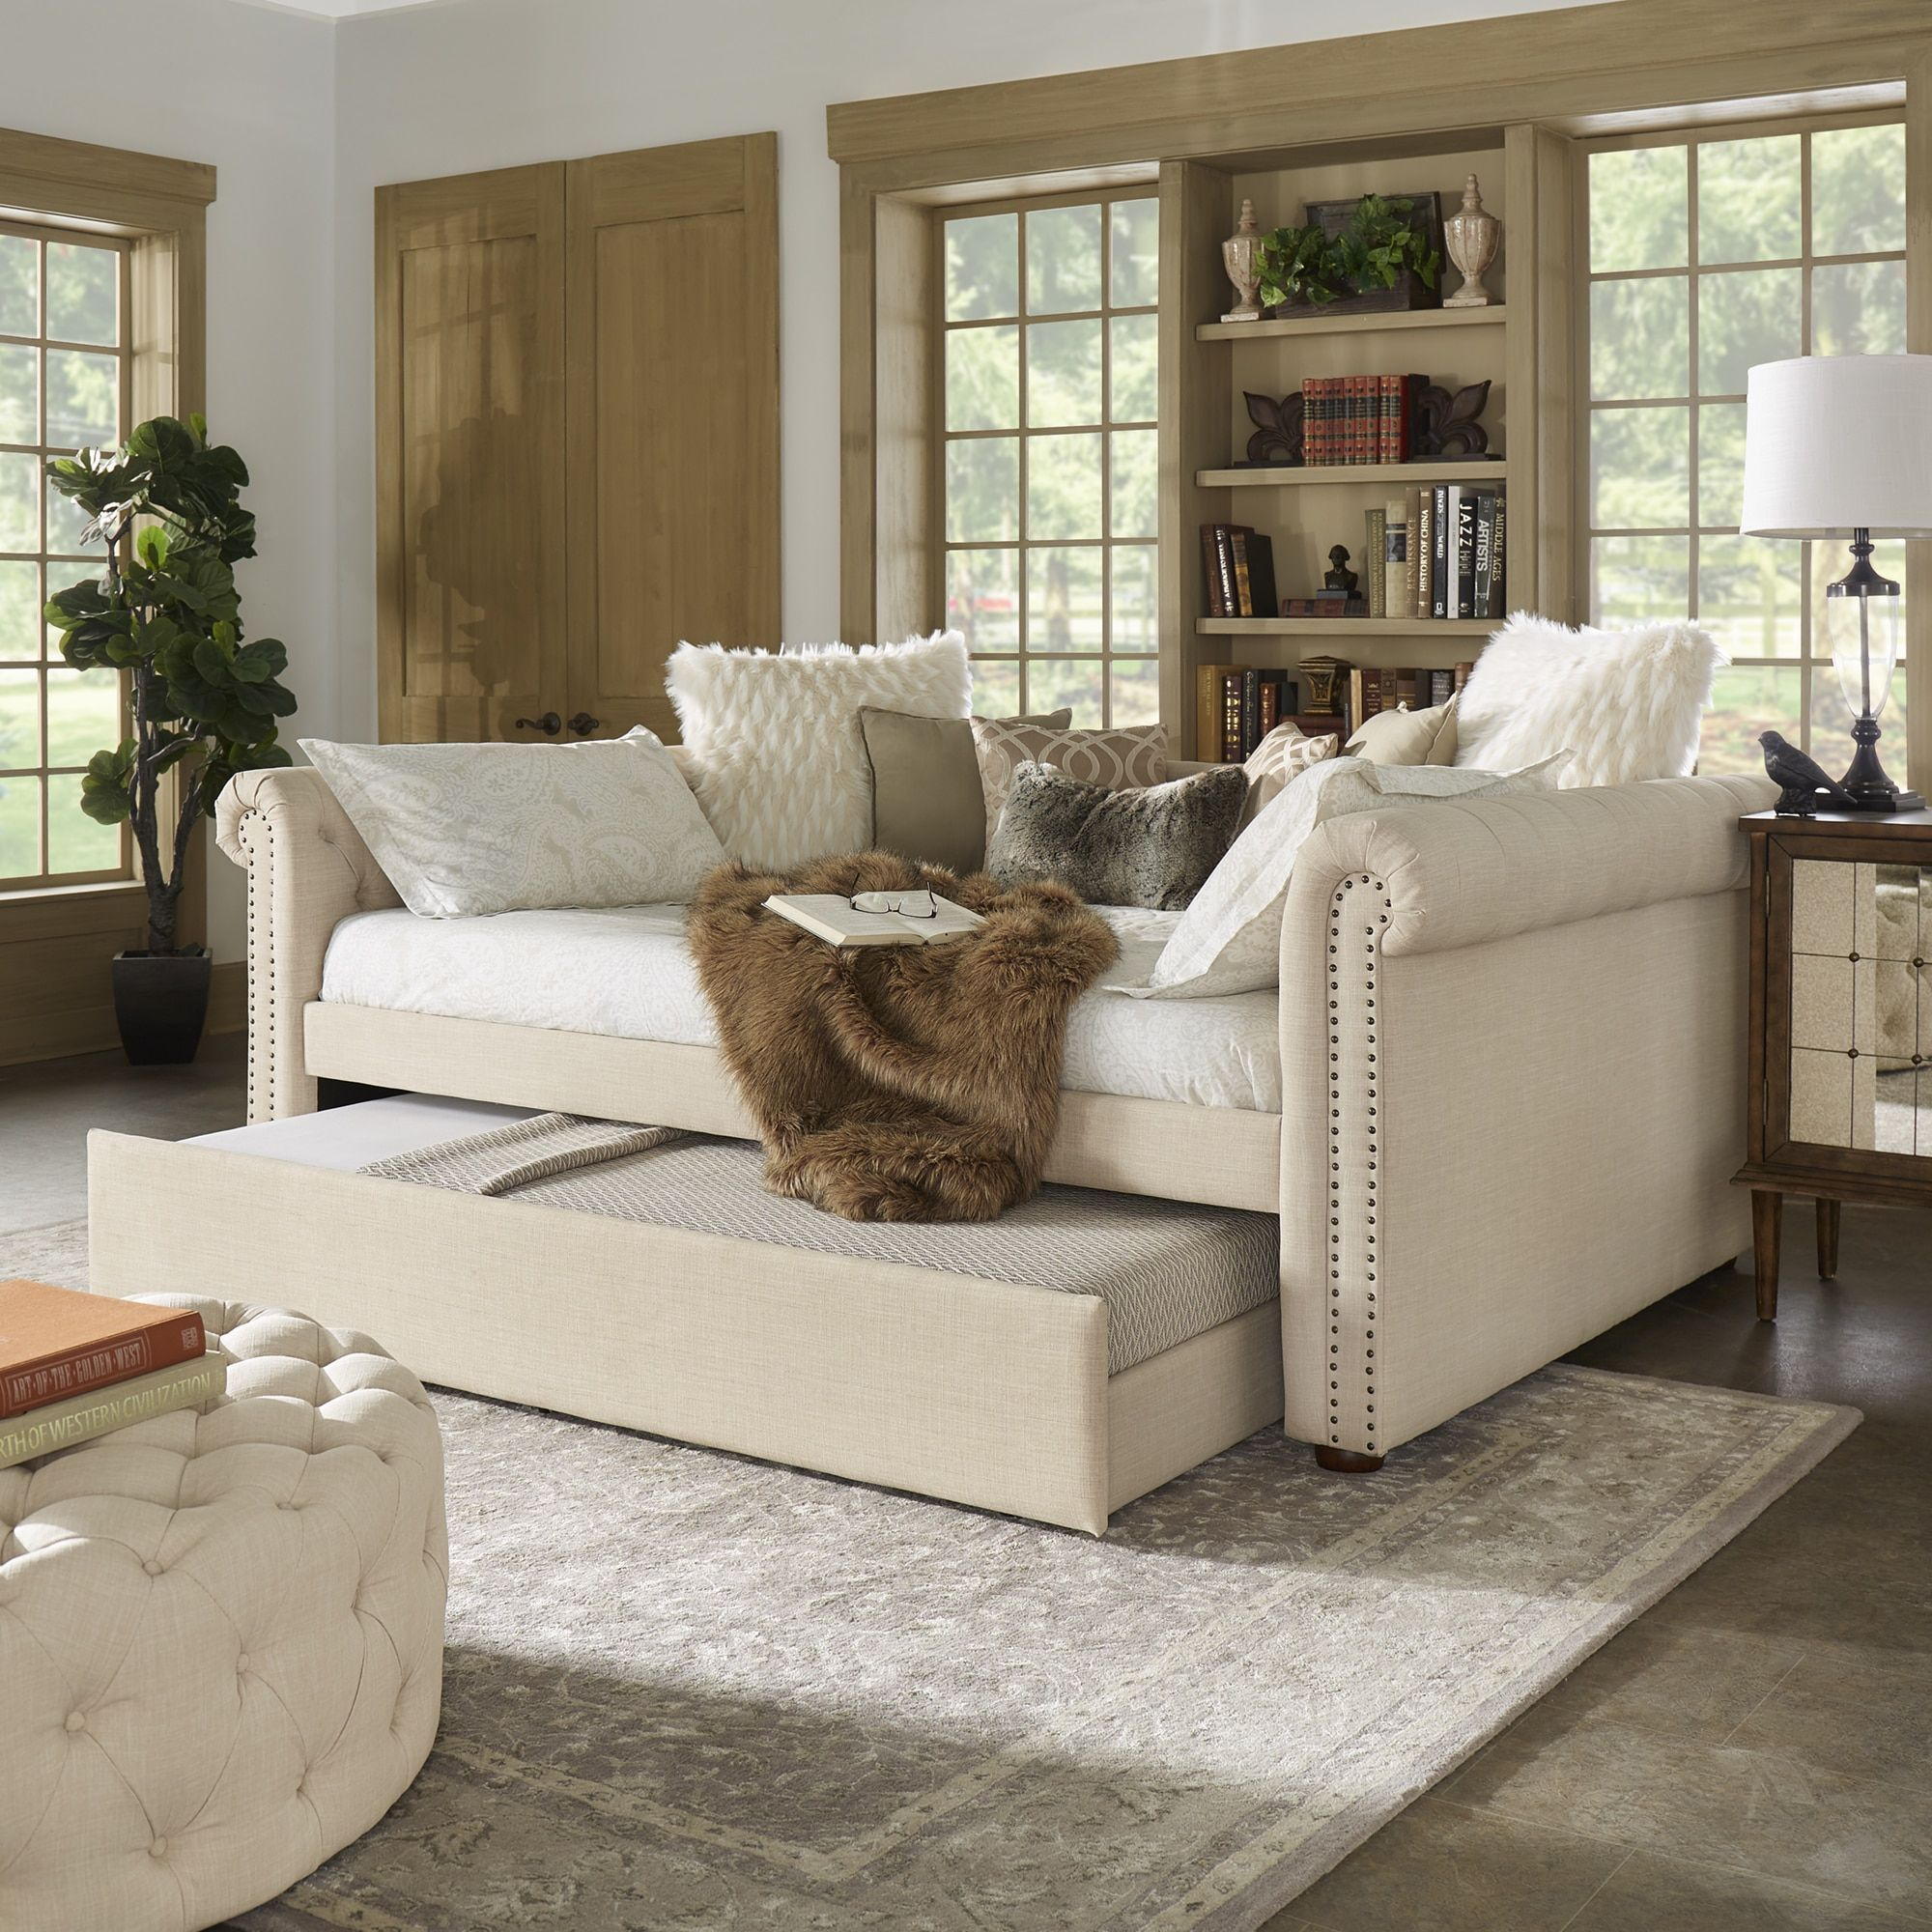 tribecca home knightsbridge beige linen tufted scroll arm chesterfield sofa dundee sofascore size daybed